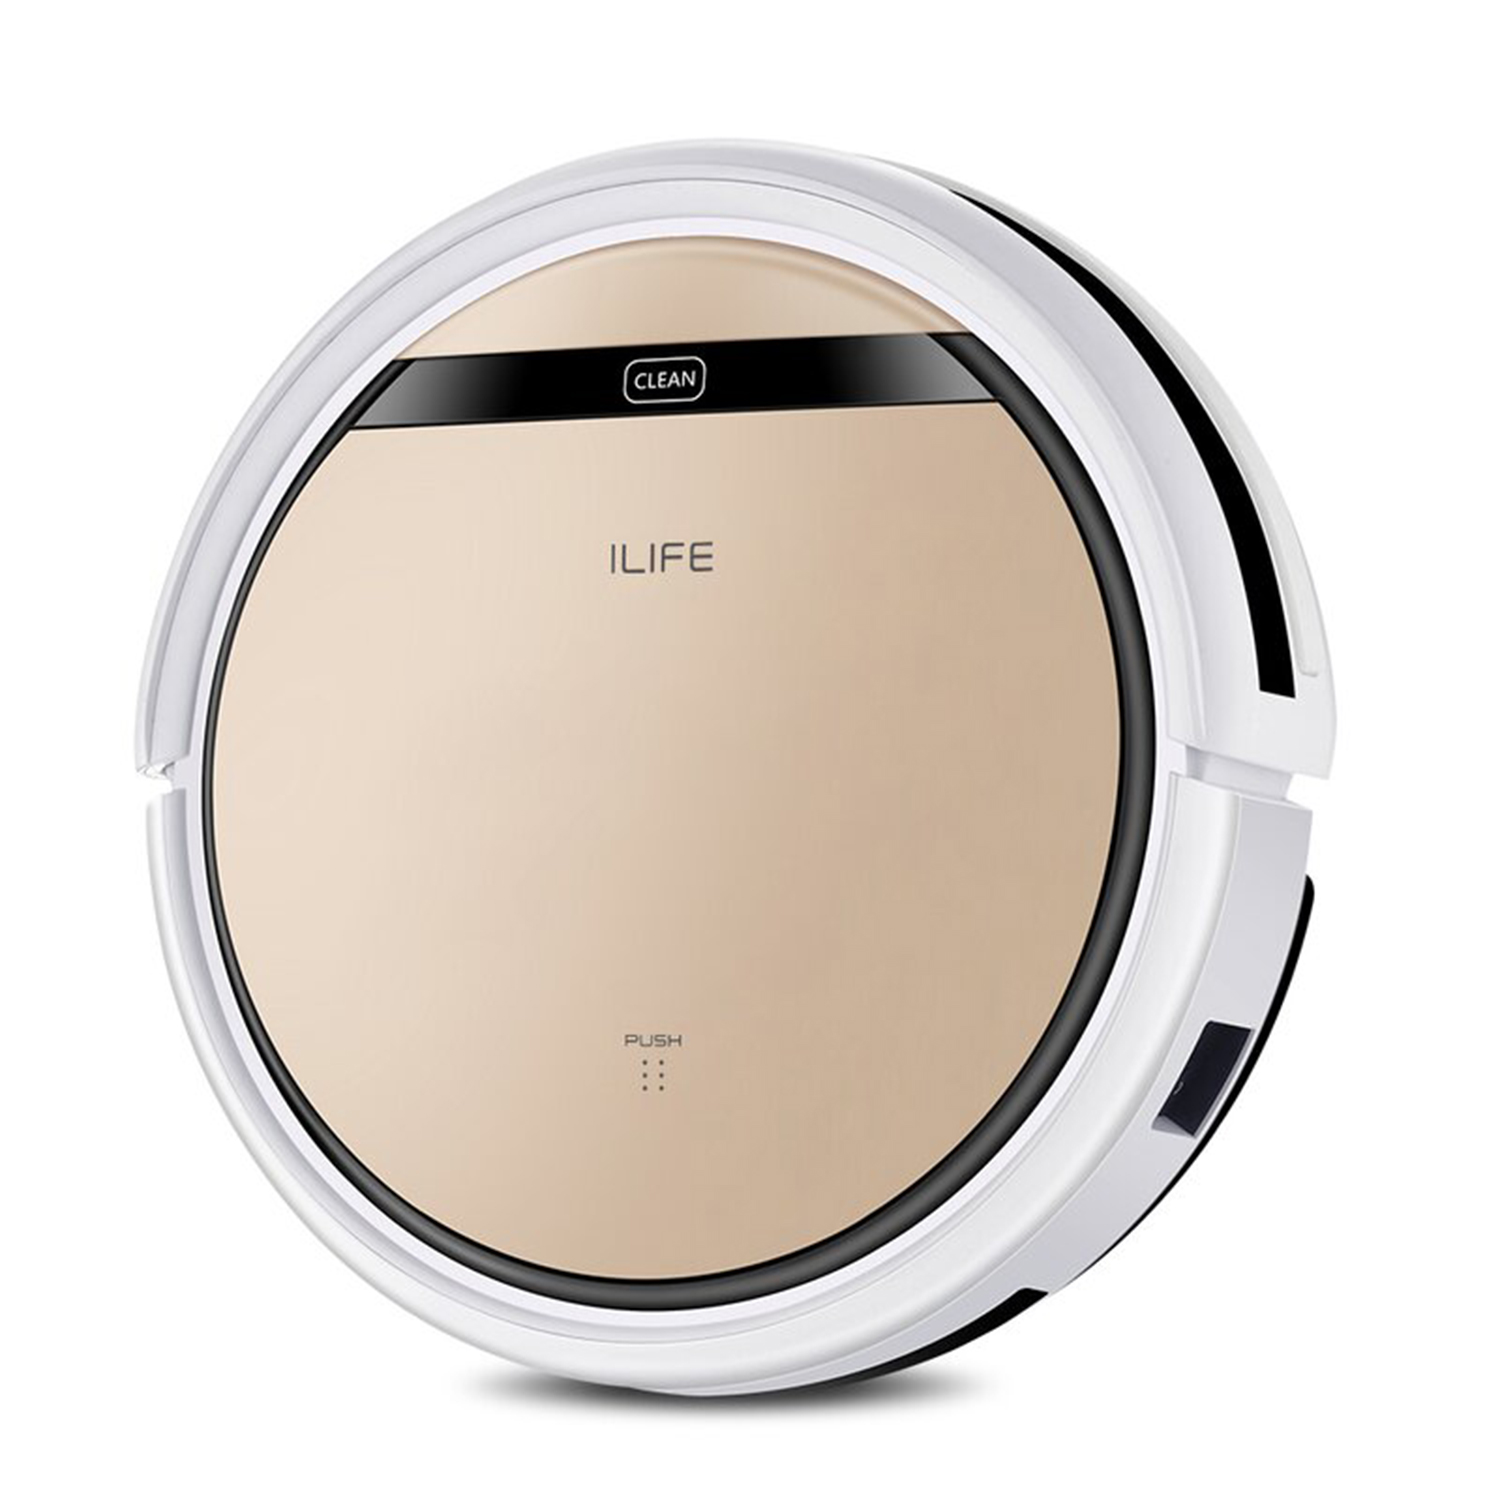 ILIFE V5s Pro 2-in-1 Mopping Bagless Robotic Vacuum